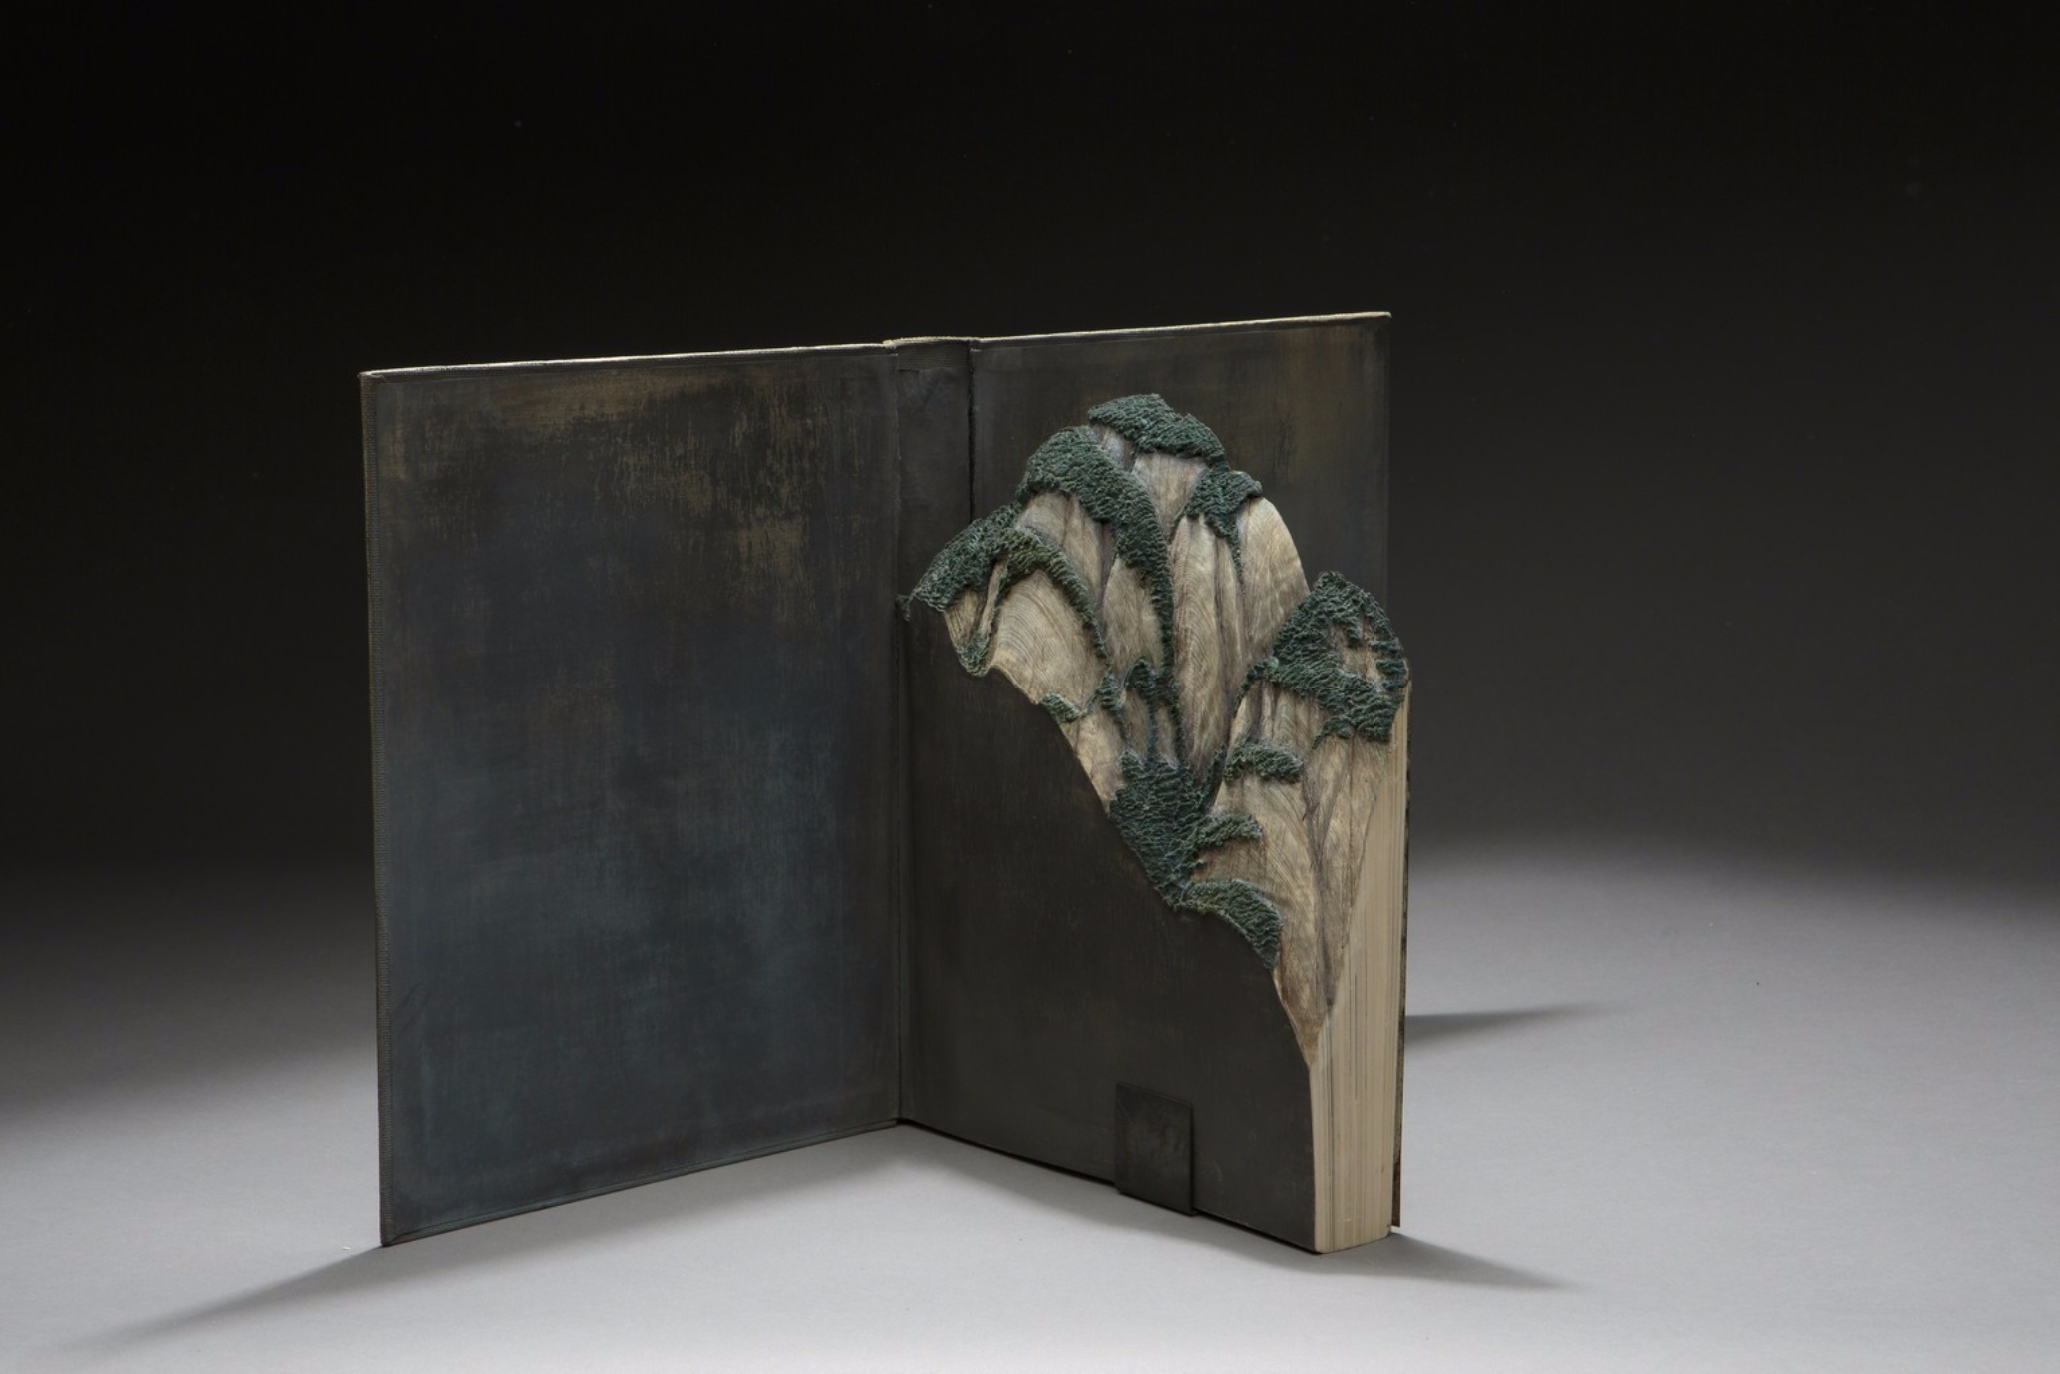 Guy Laramee Creates Hyperrealistic Topographic Landscapes Carved into Old Books - Arts de la Chine